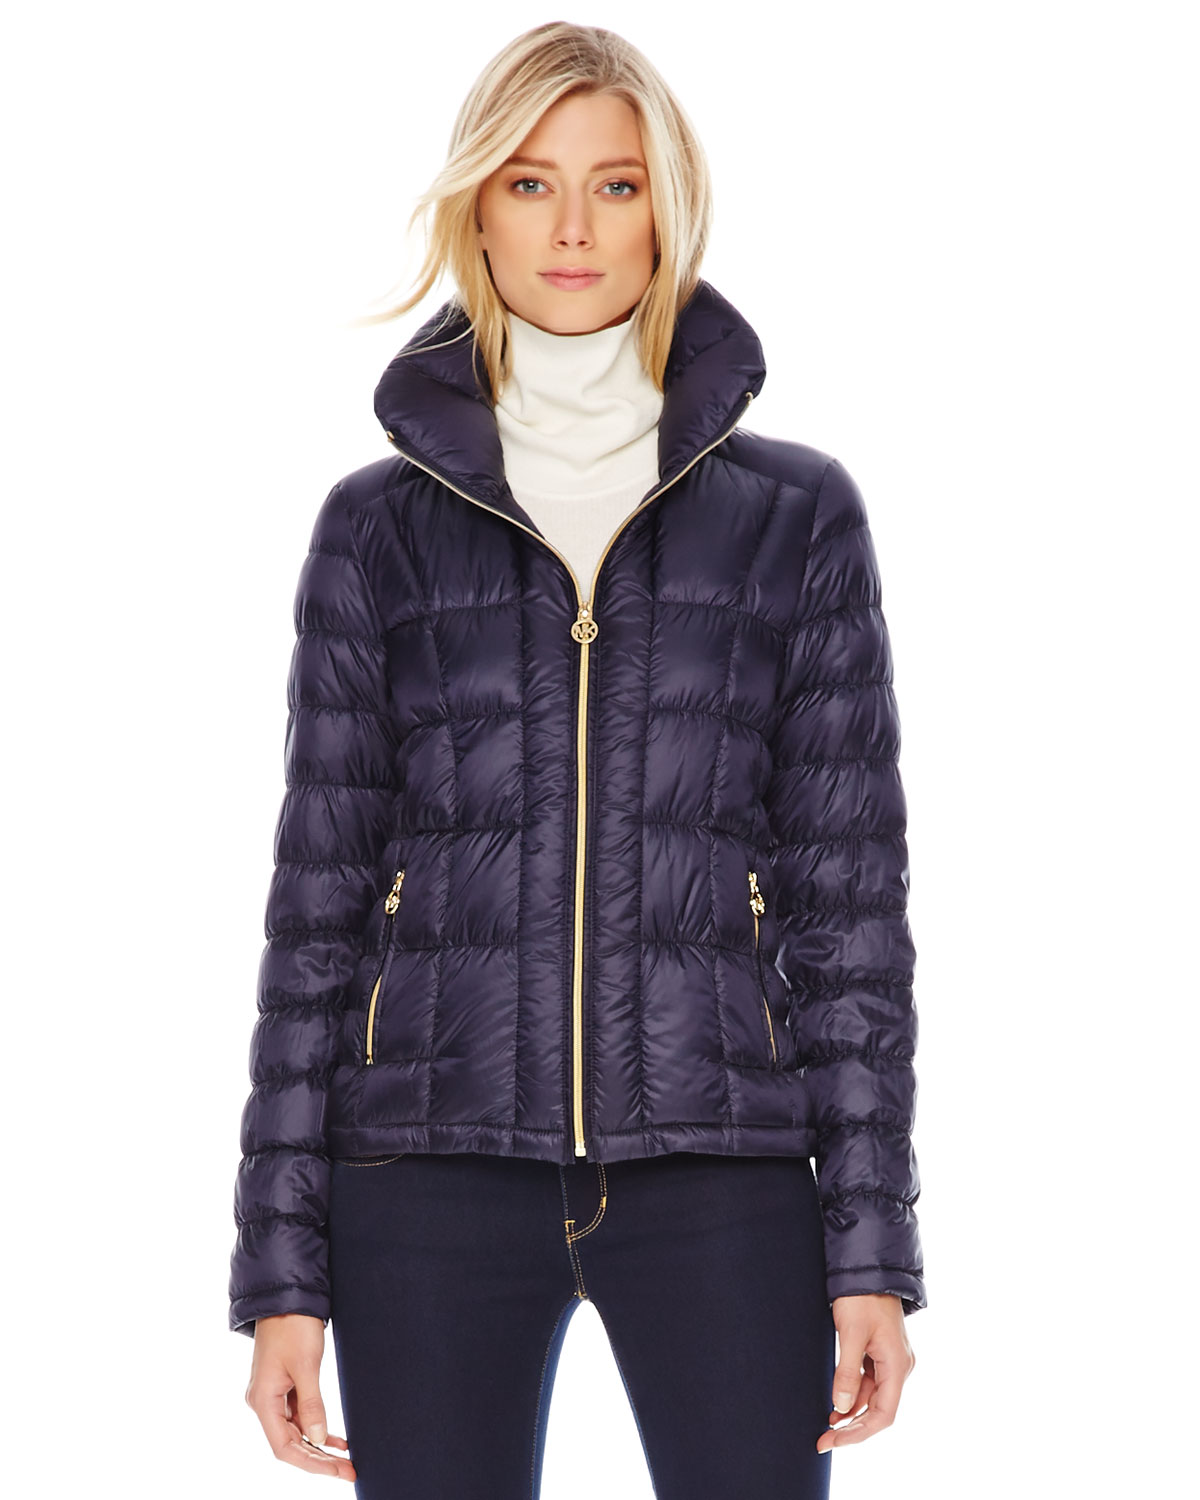 Michael kors Short Puffer Jacket in Blue | Lyst